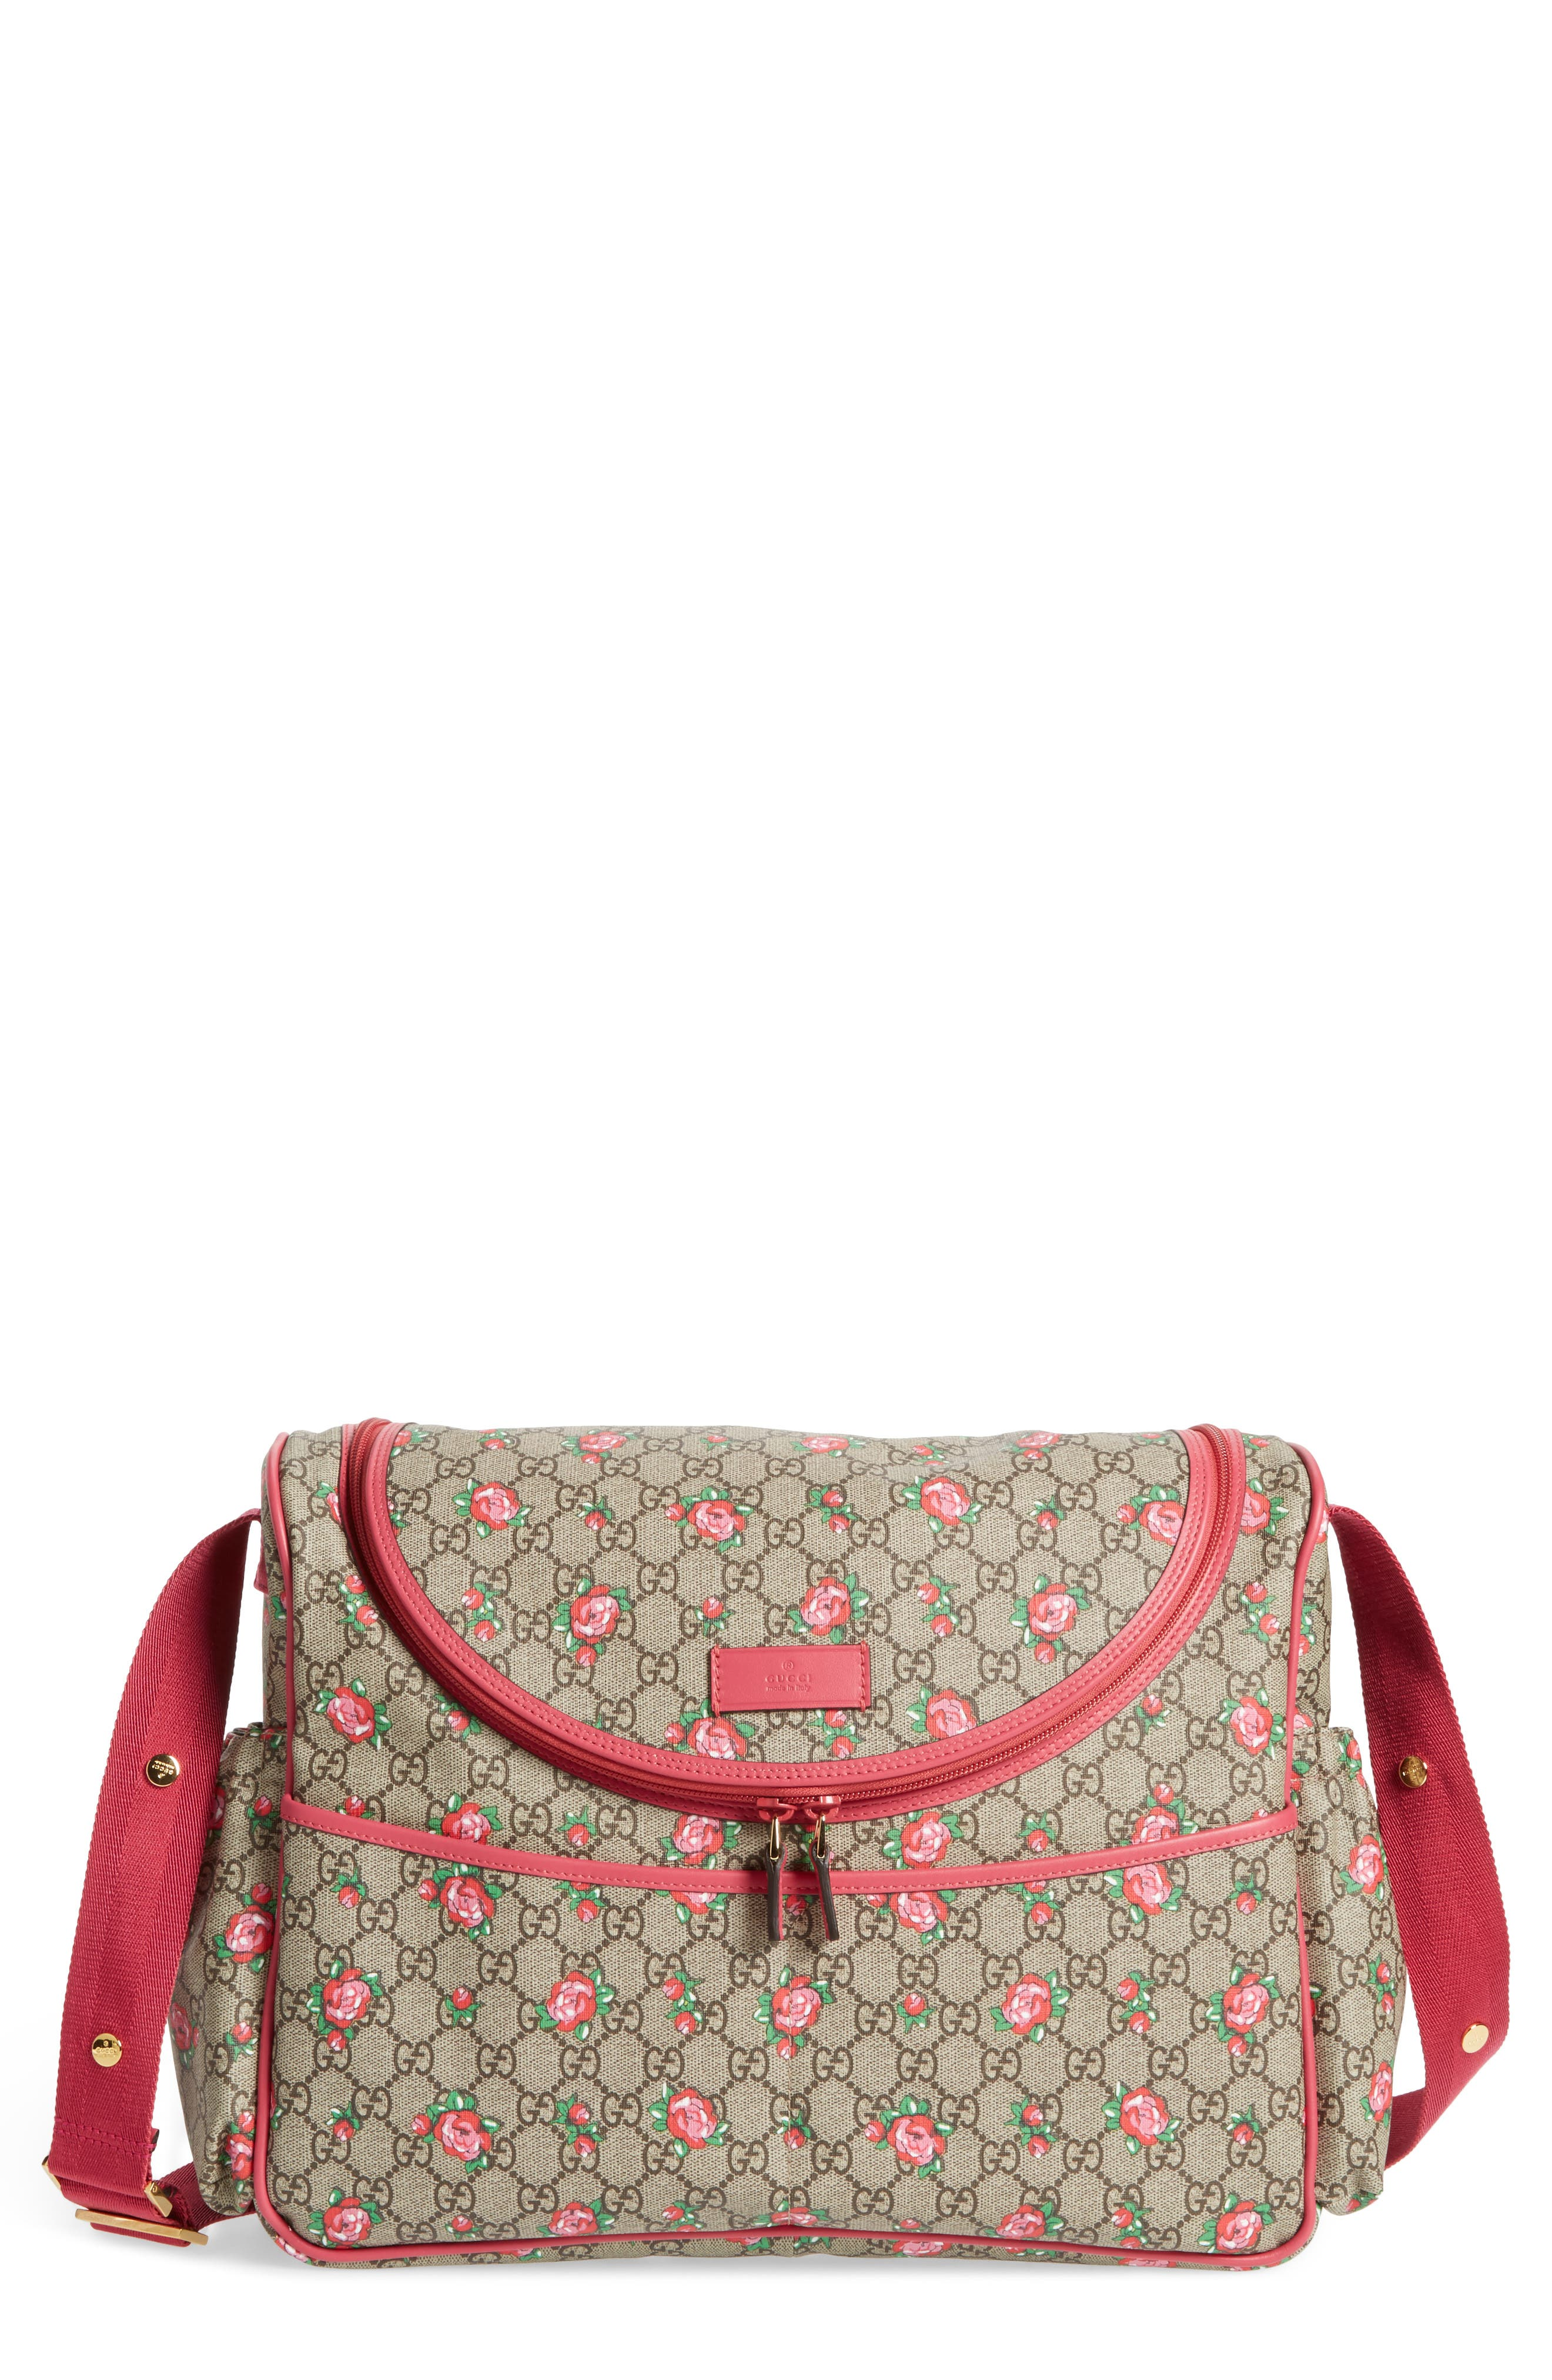 gucci bags for girls. gucci rose bud gg supreme diaper bag bags for girls